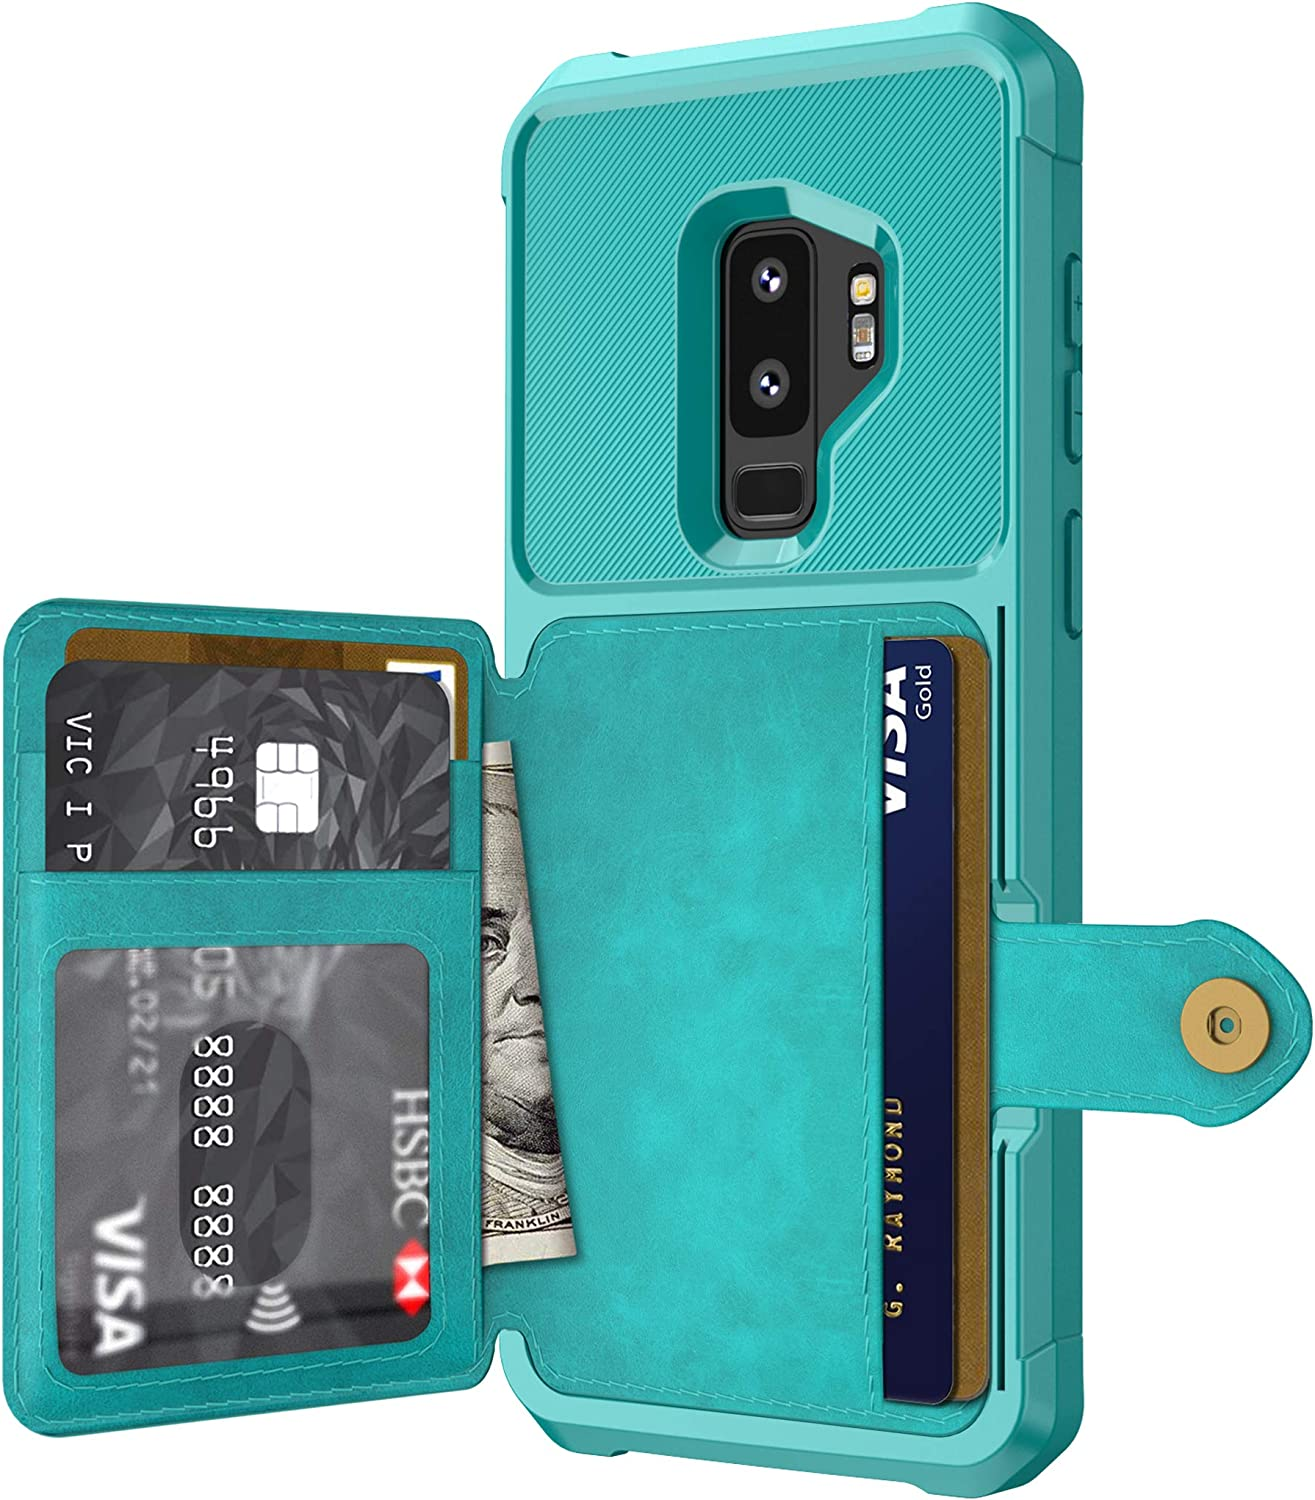 Galaxy S9 Case, Sumsung S9 Wallet Flip Leather Kickstand Fit Magnetic Wireless Car Charger Mount Slim Durable Shockproof Protective Case Cover with Card Holder (Turquoise)